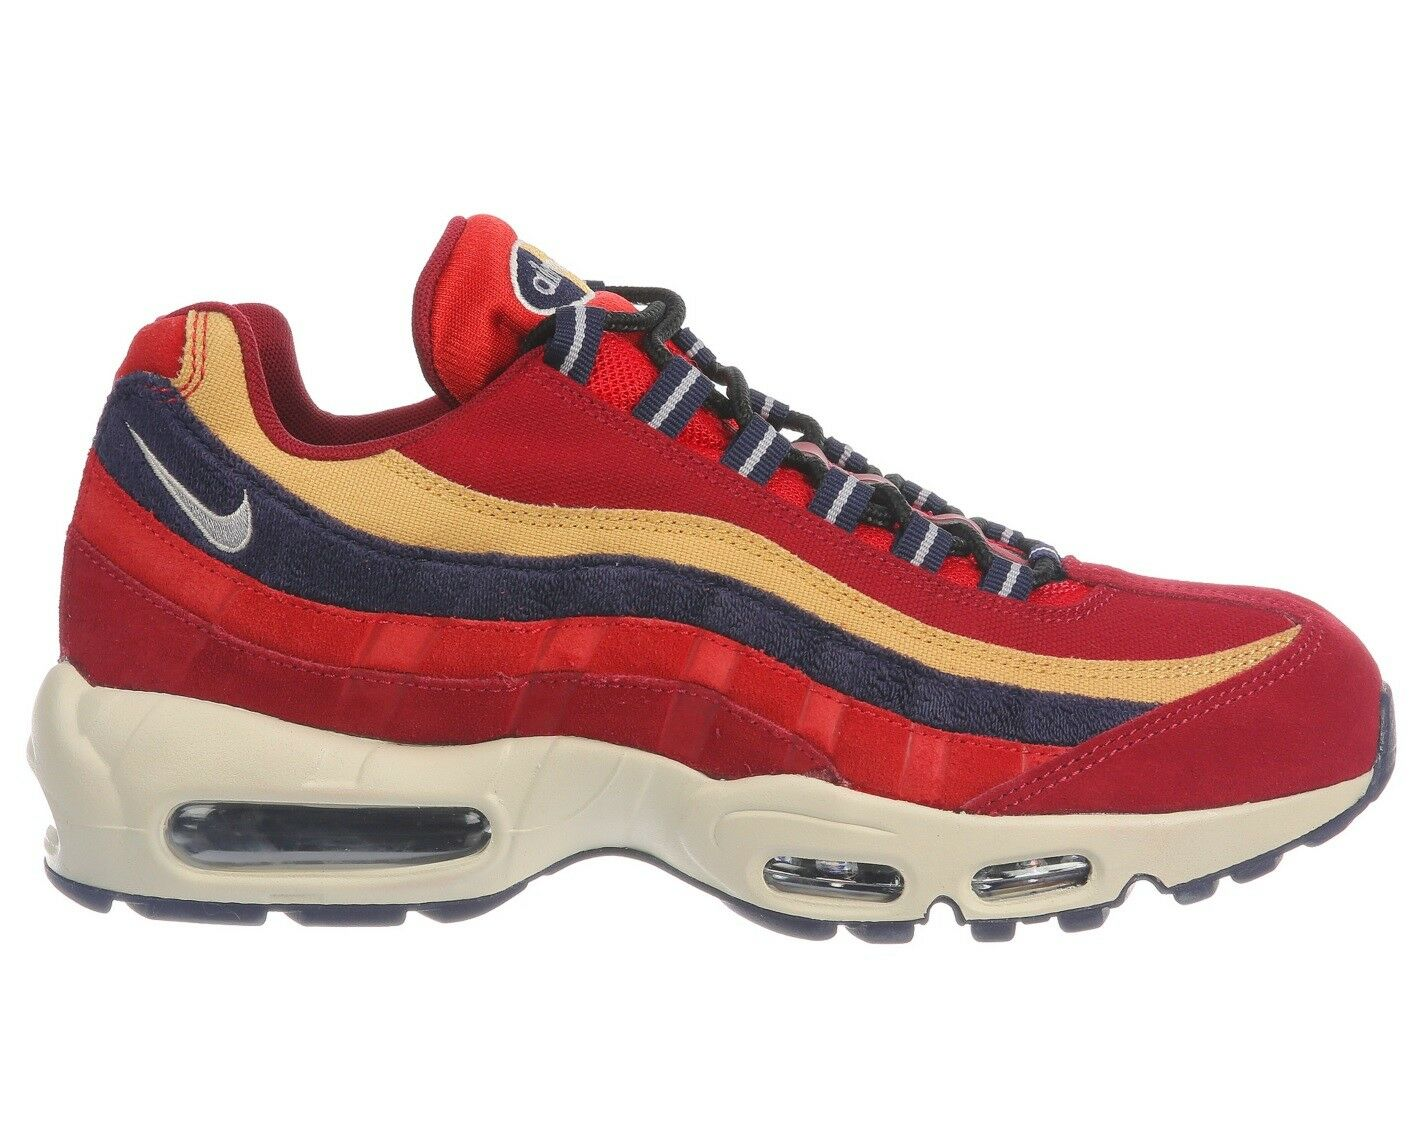 wholesale dealer 6489a 3d29e Nike Air Max 95 Premium Mens 538416-603 Red Red 538416-603 Purple Wheat  Running Shoes Size 11.5 14cb62